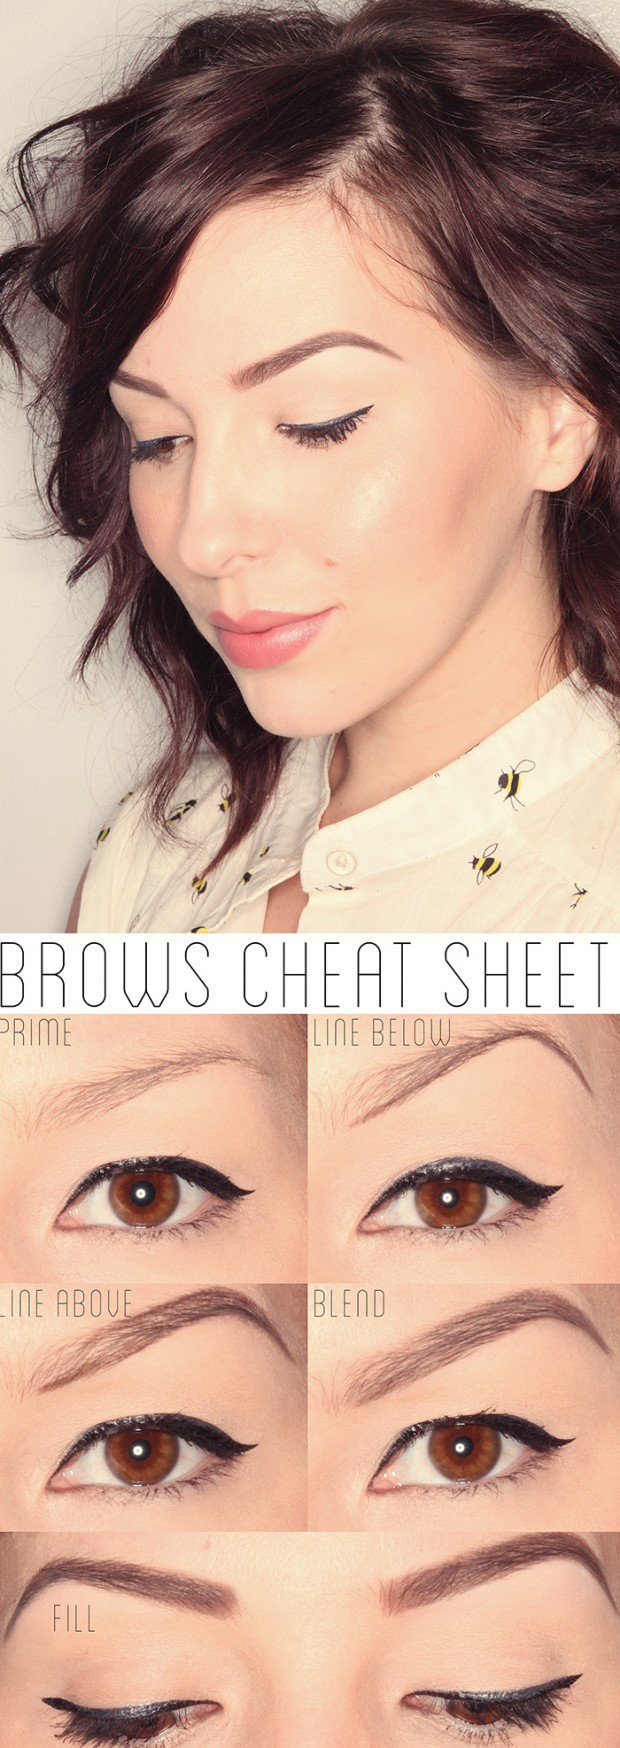 16 Makeup Tricks For Flawless Look Every Woman Should Know